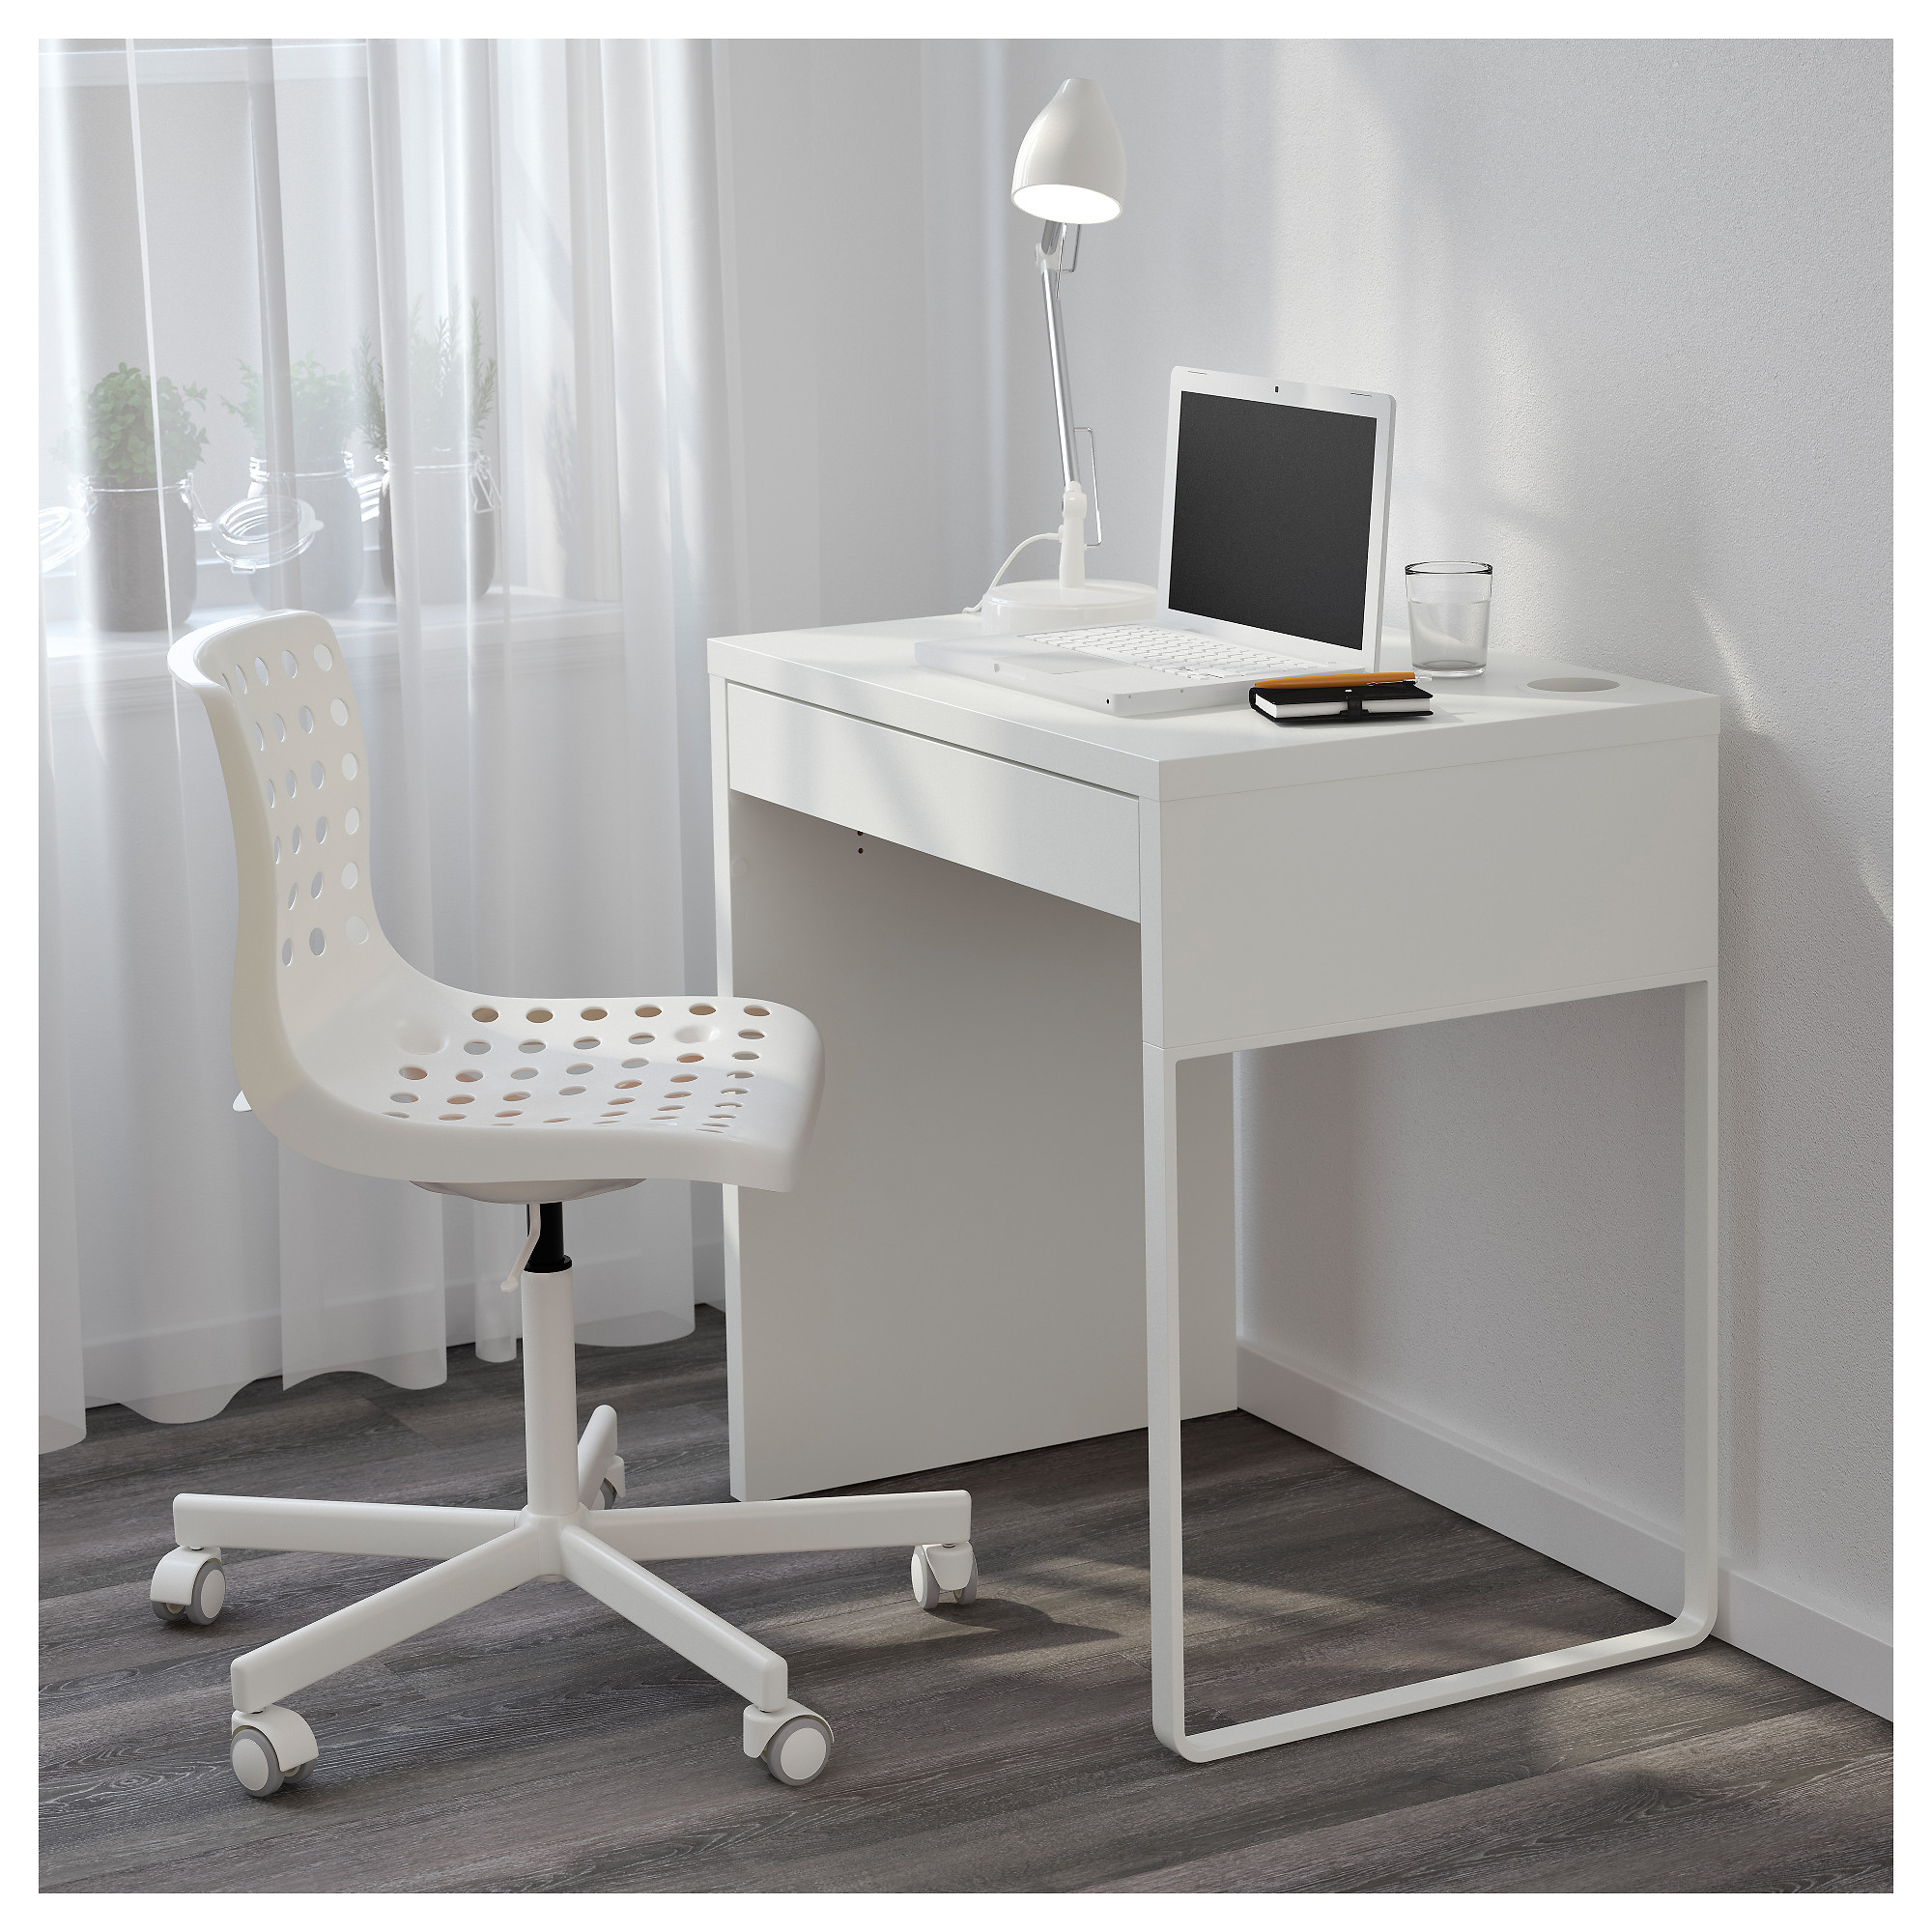 Superieur Narrow Computer Desks For Small Spaces | Minimalist Desk .